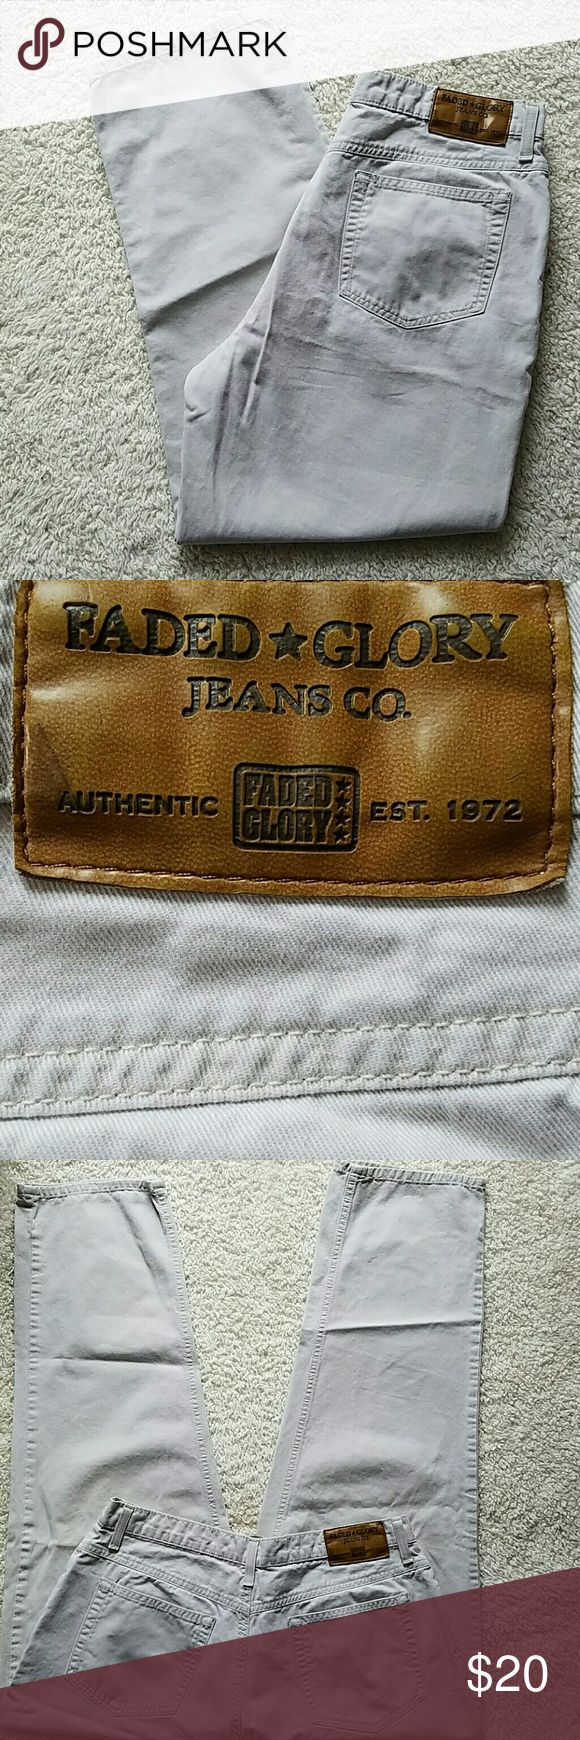 FADED GLORY JEANS FADED GLORY JEANS TAN Faded Glory Jeans